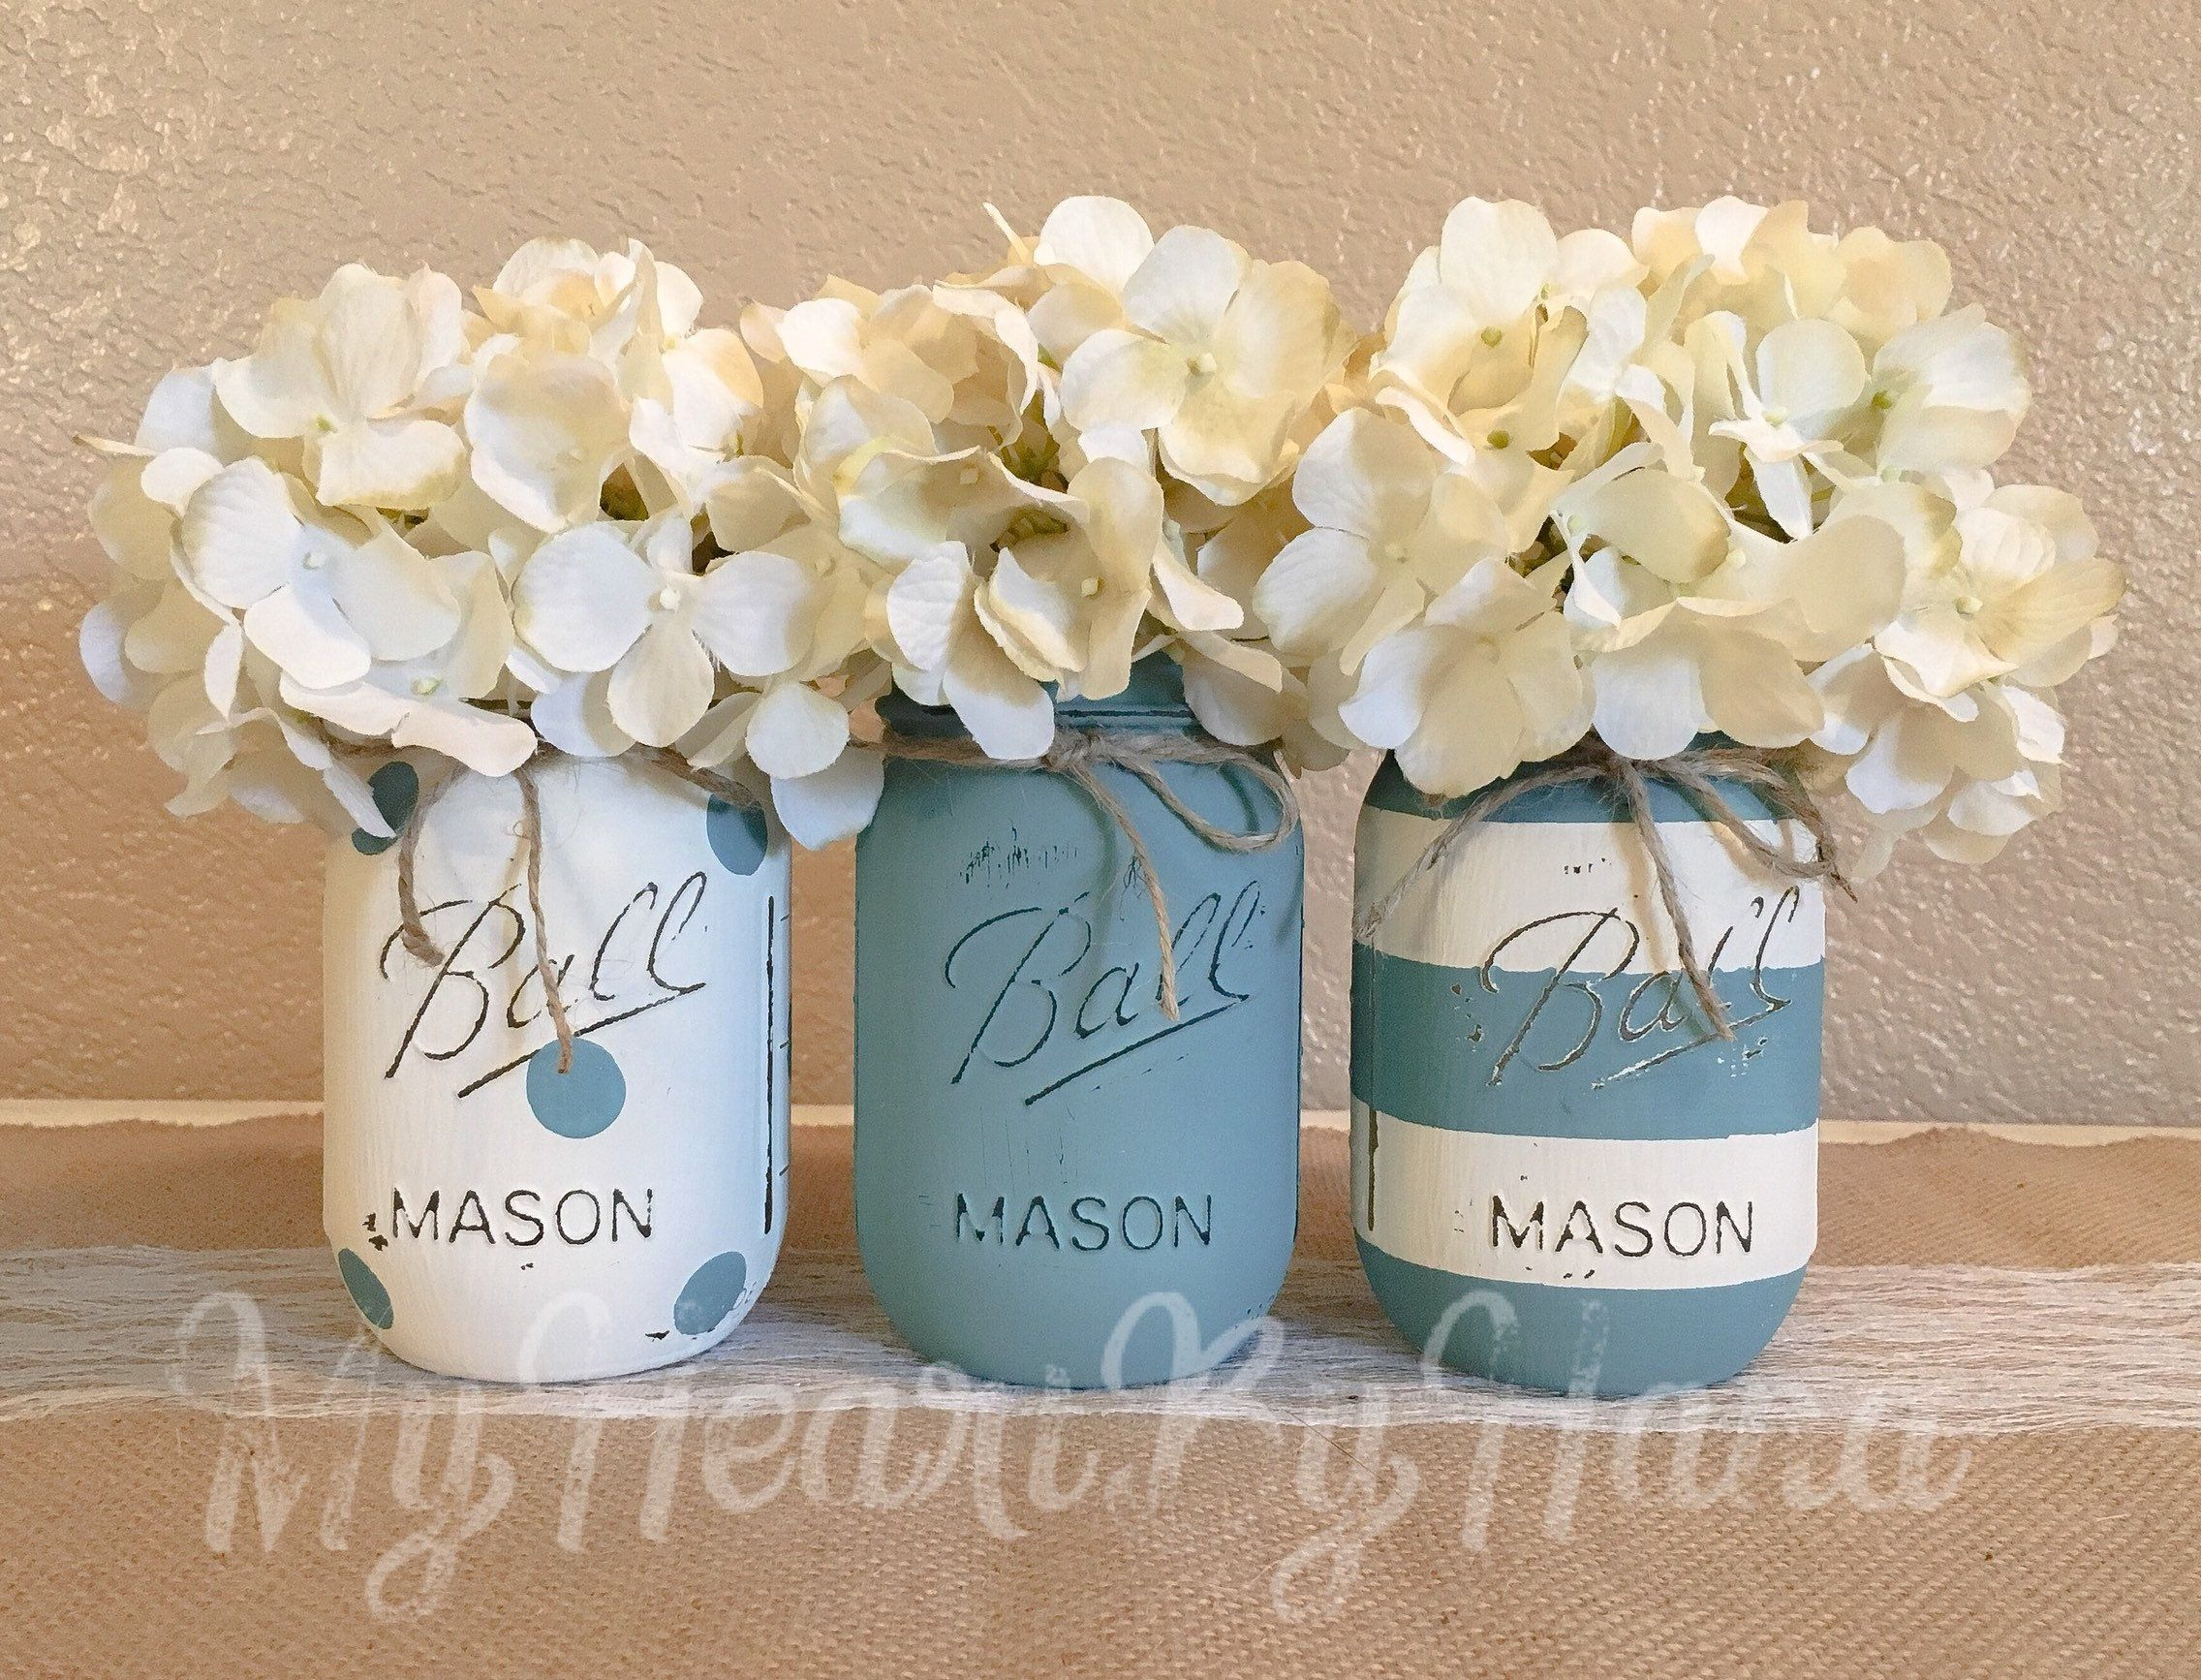 Wedding decorations home  Teal and White Home Decor Baby Shower Decorations Teal Mason Jars